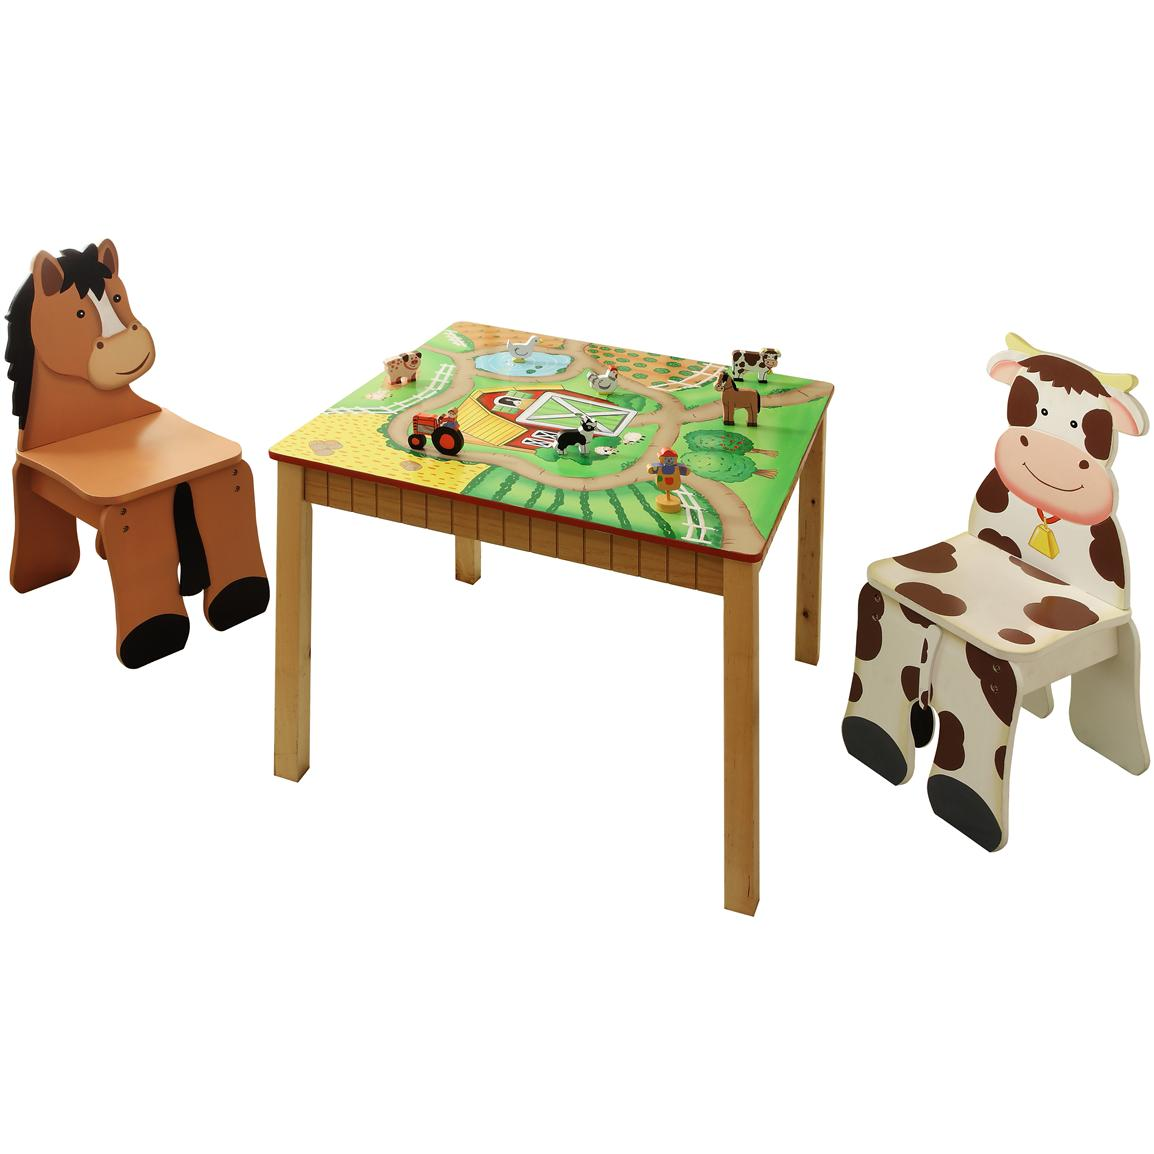 Kids Wooden Table And Chair Set From The Teamson Happy